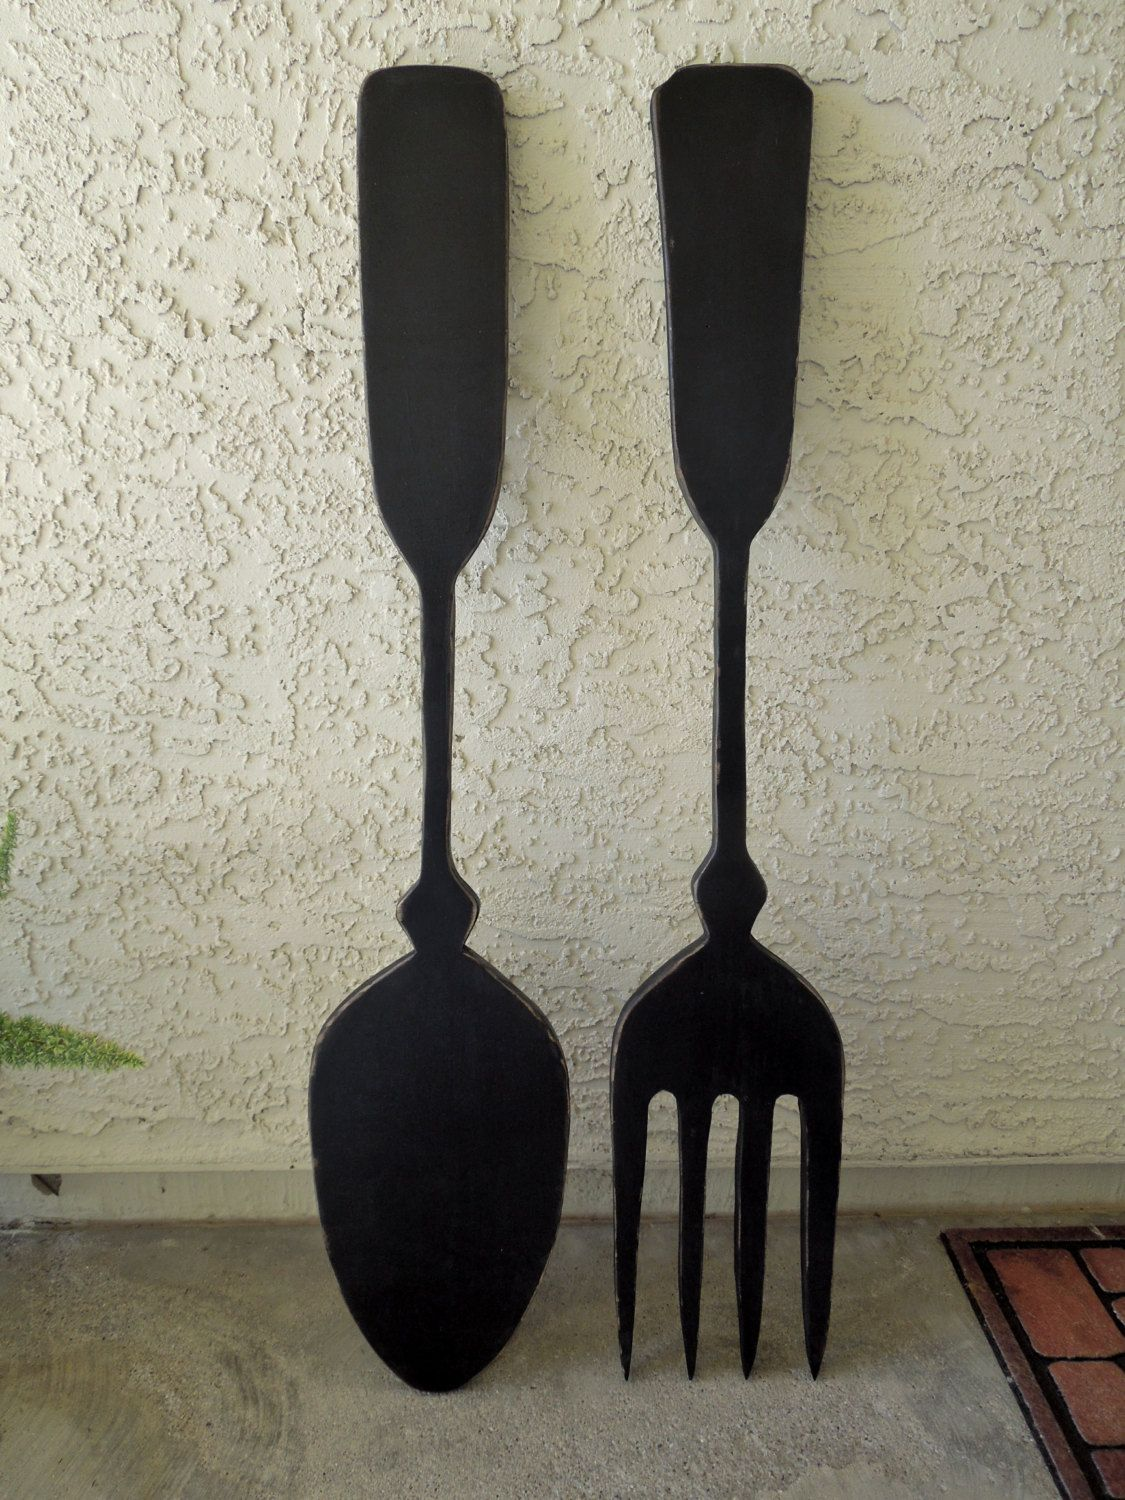 Big Wood Spoon And Fork Wall Decor For Your Kitchen By